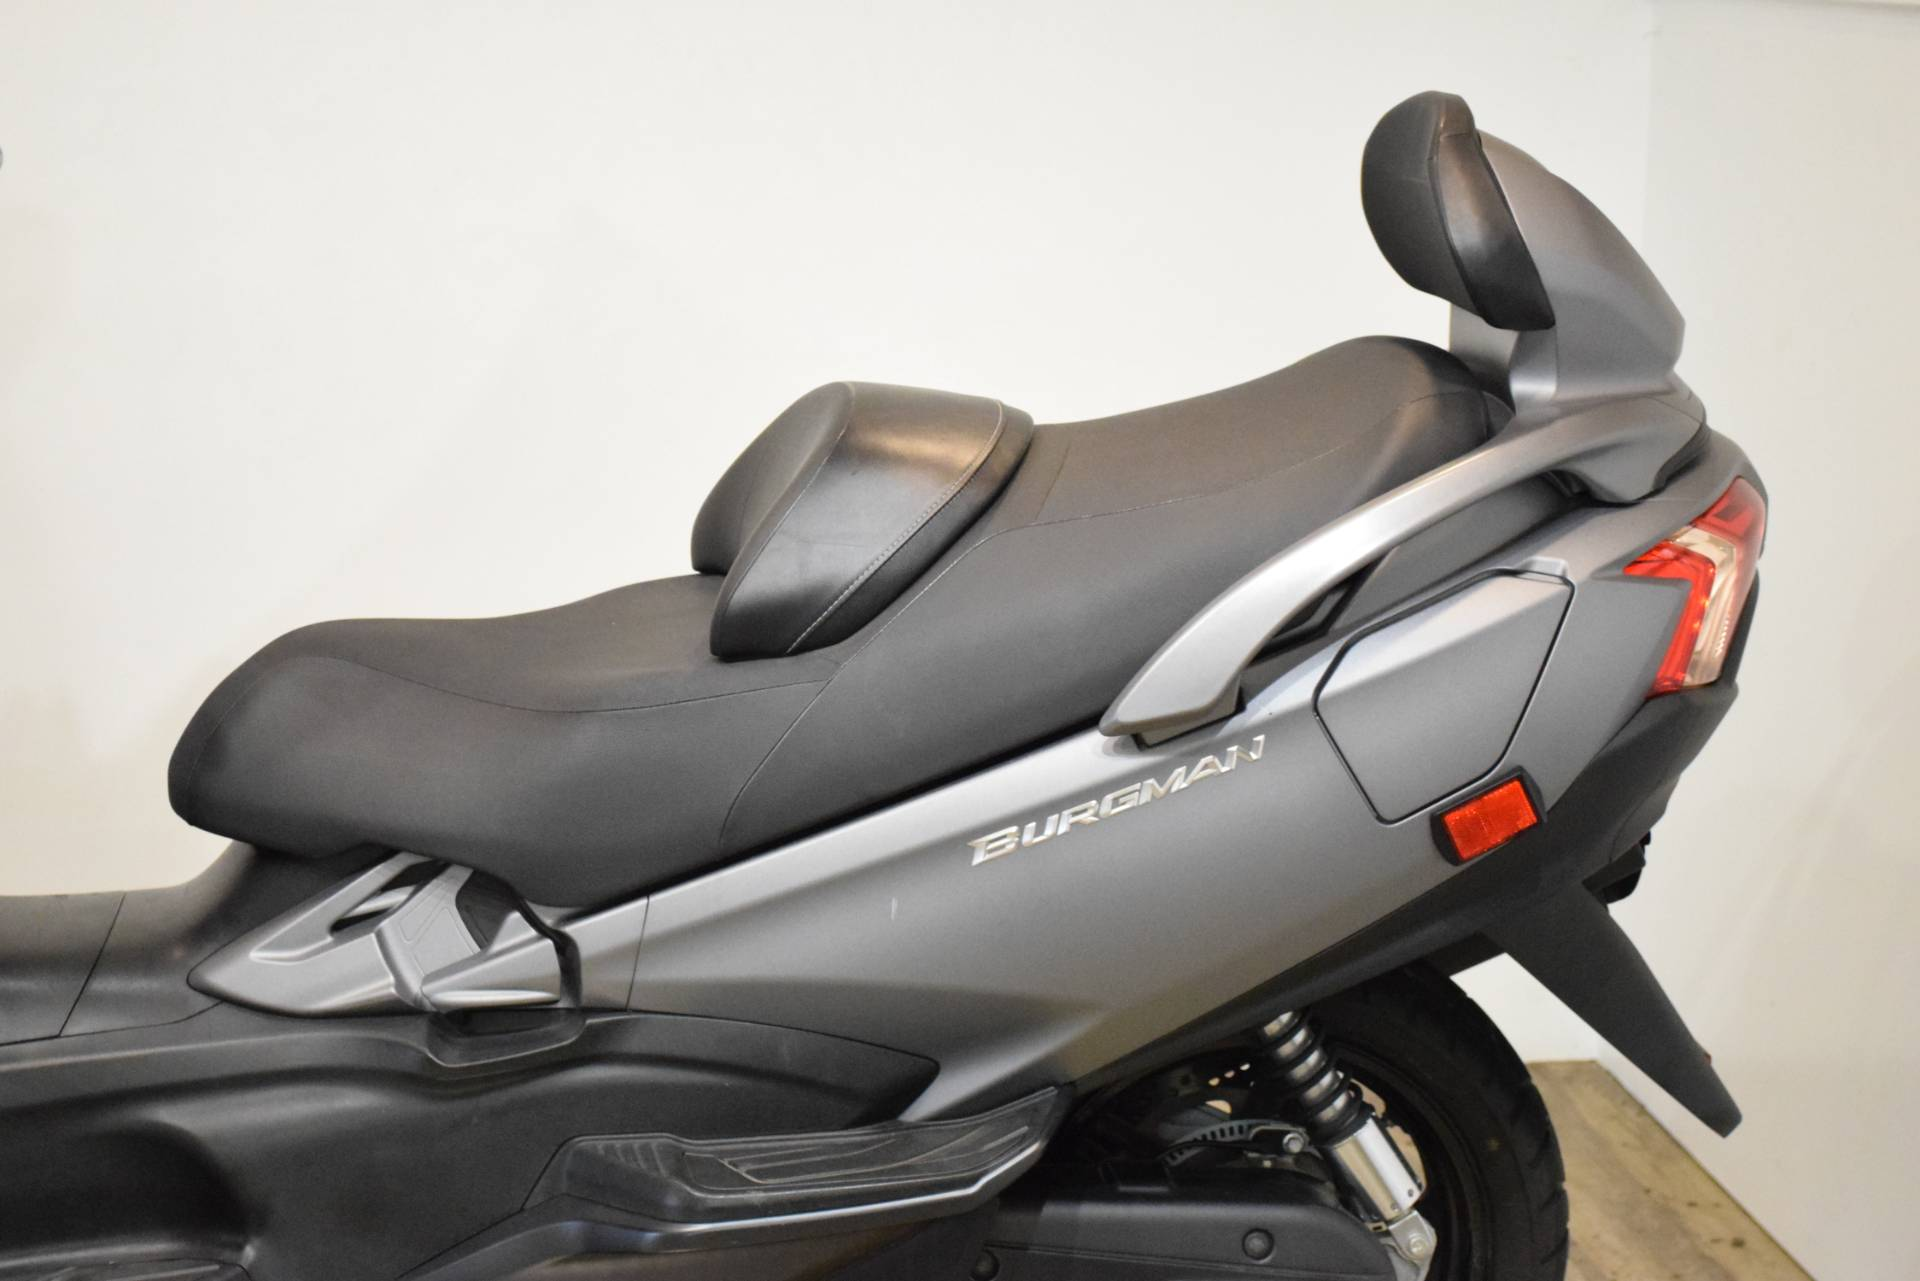 2014 Suzuki Burgman™ 650 ABS in Wauconda, Illinois - Photo 16